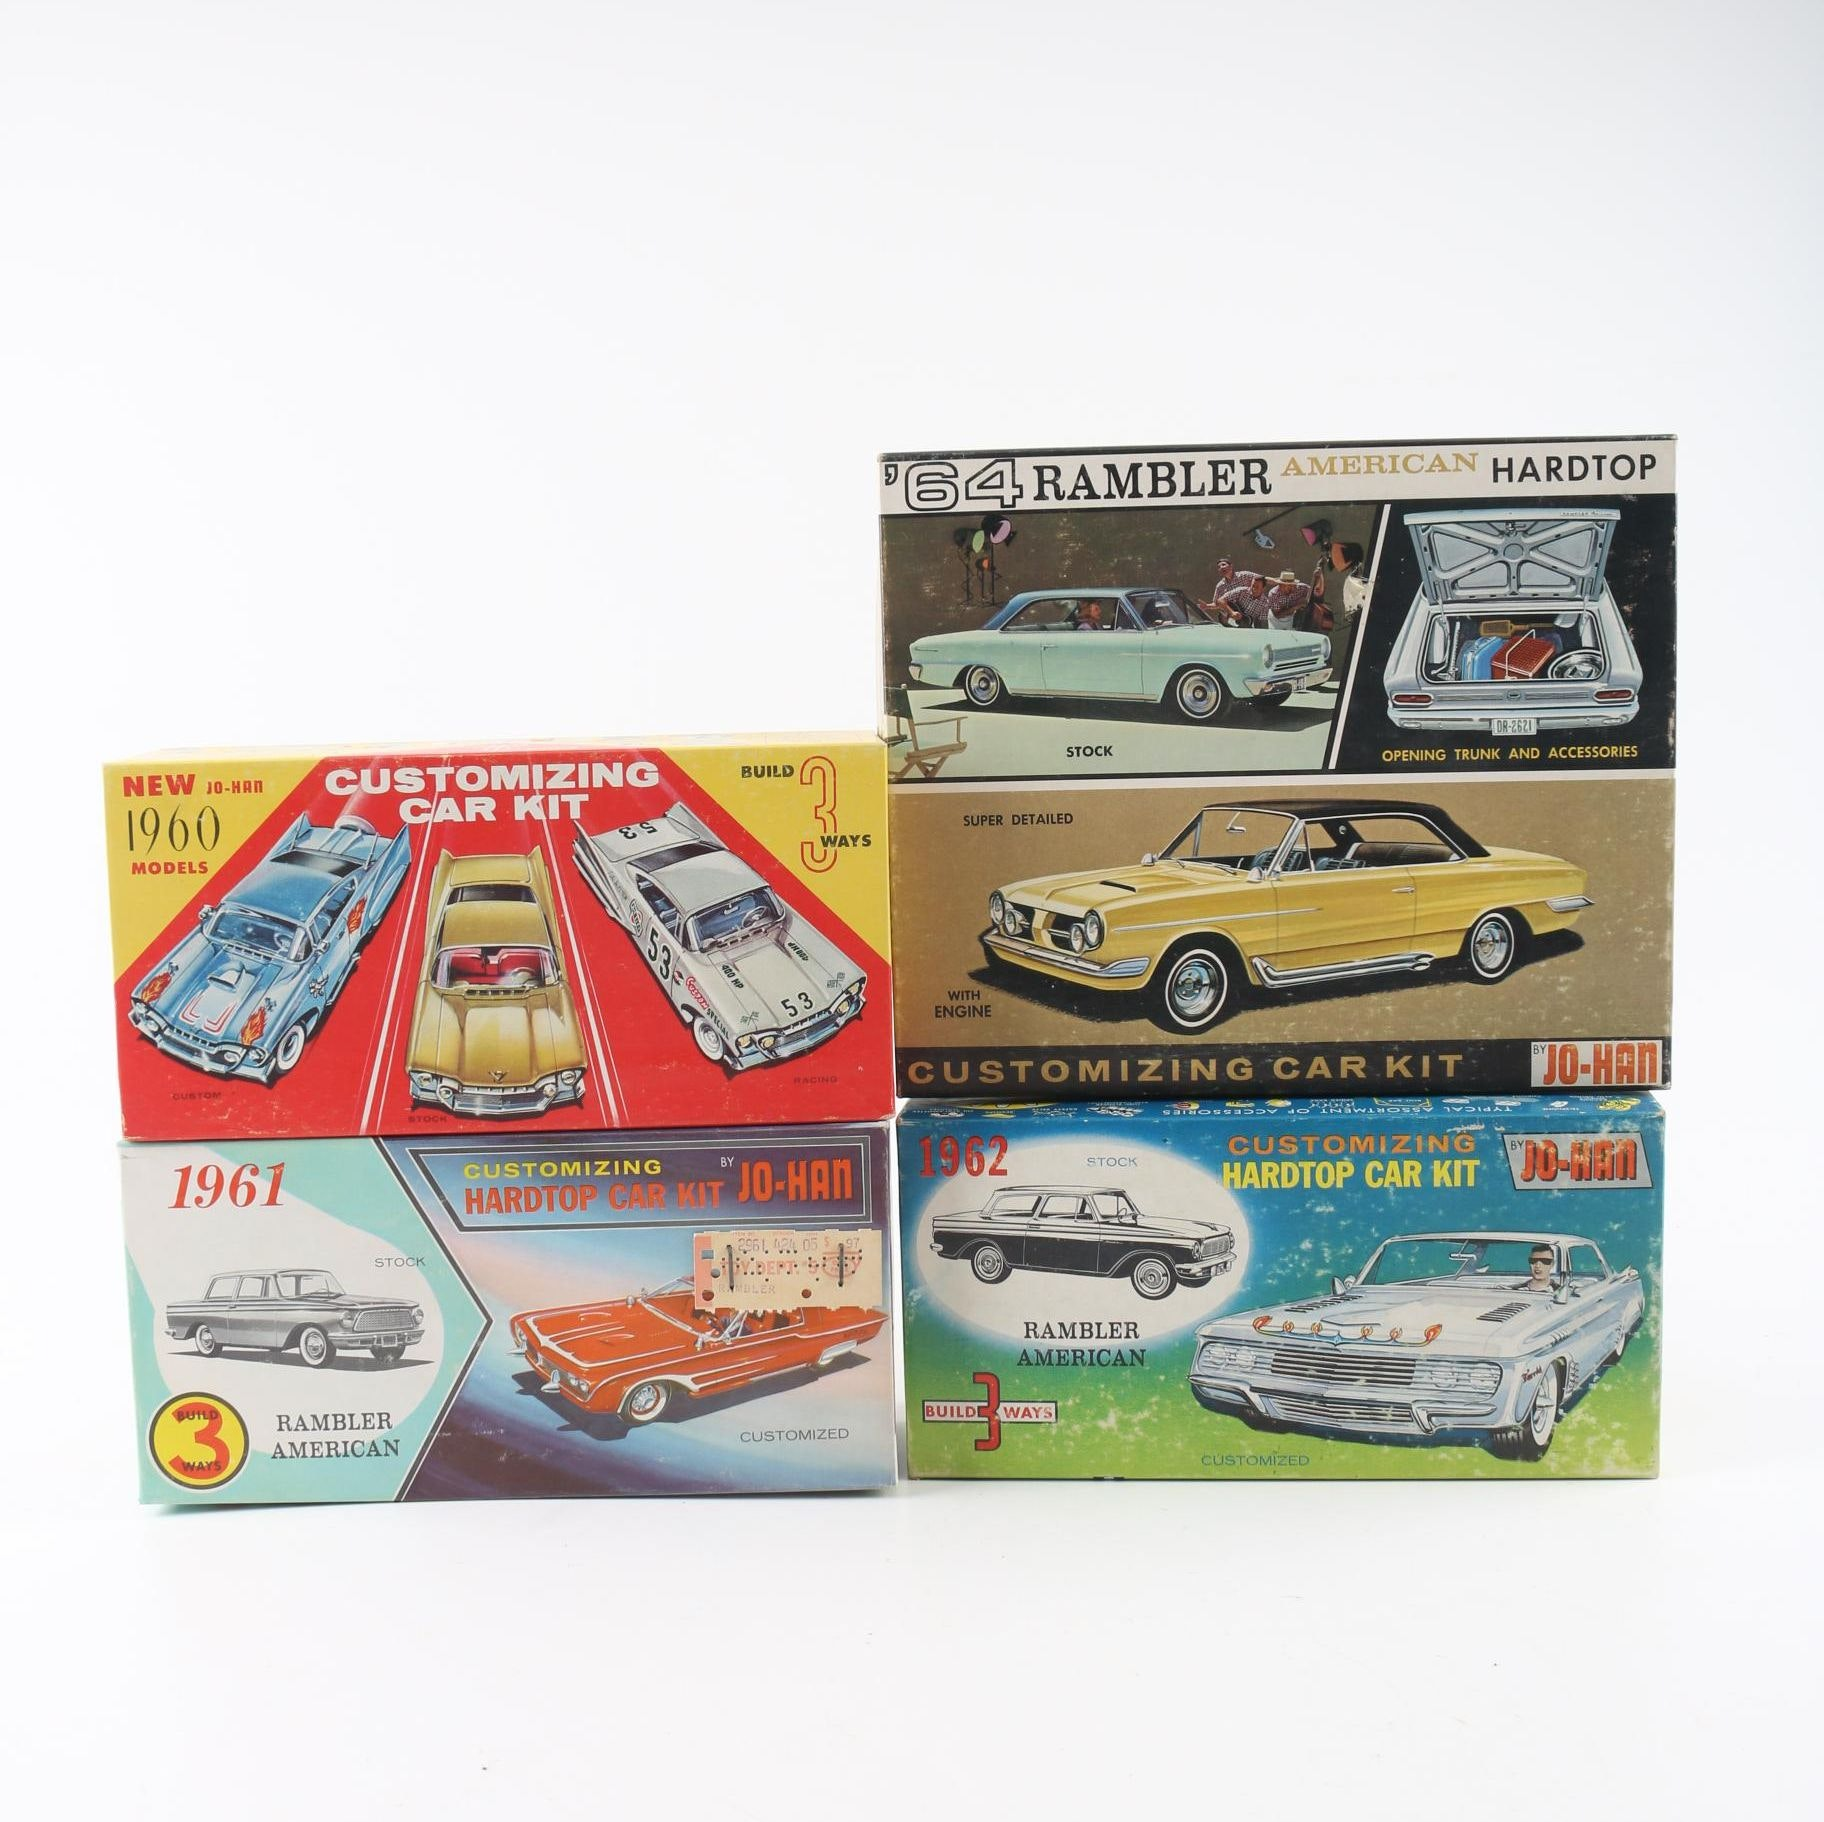 Collection of Vintage Johan Model Boxes